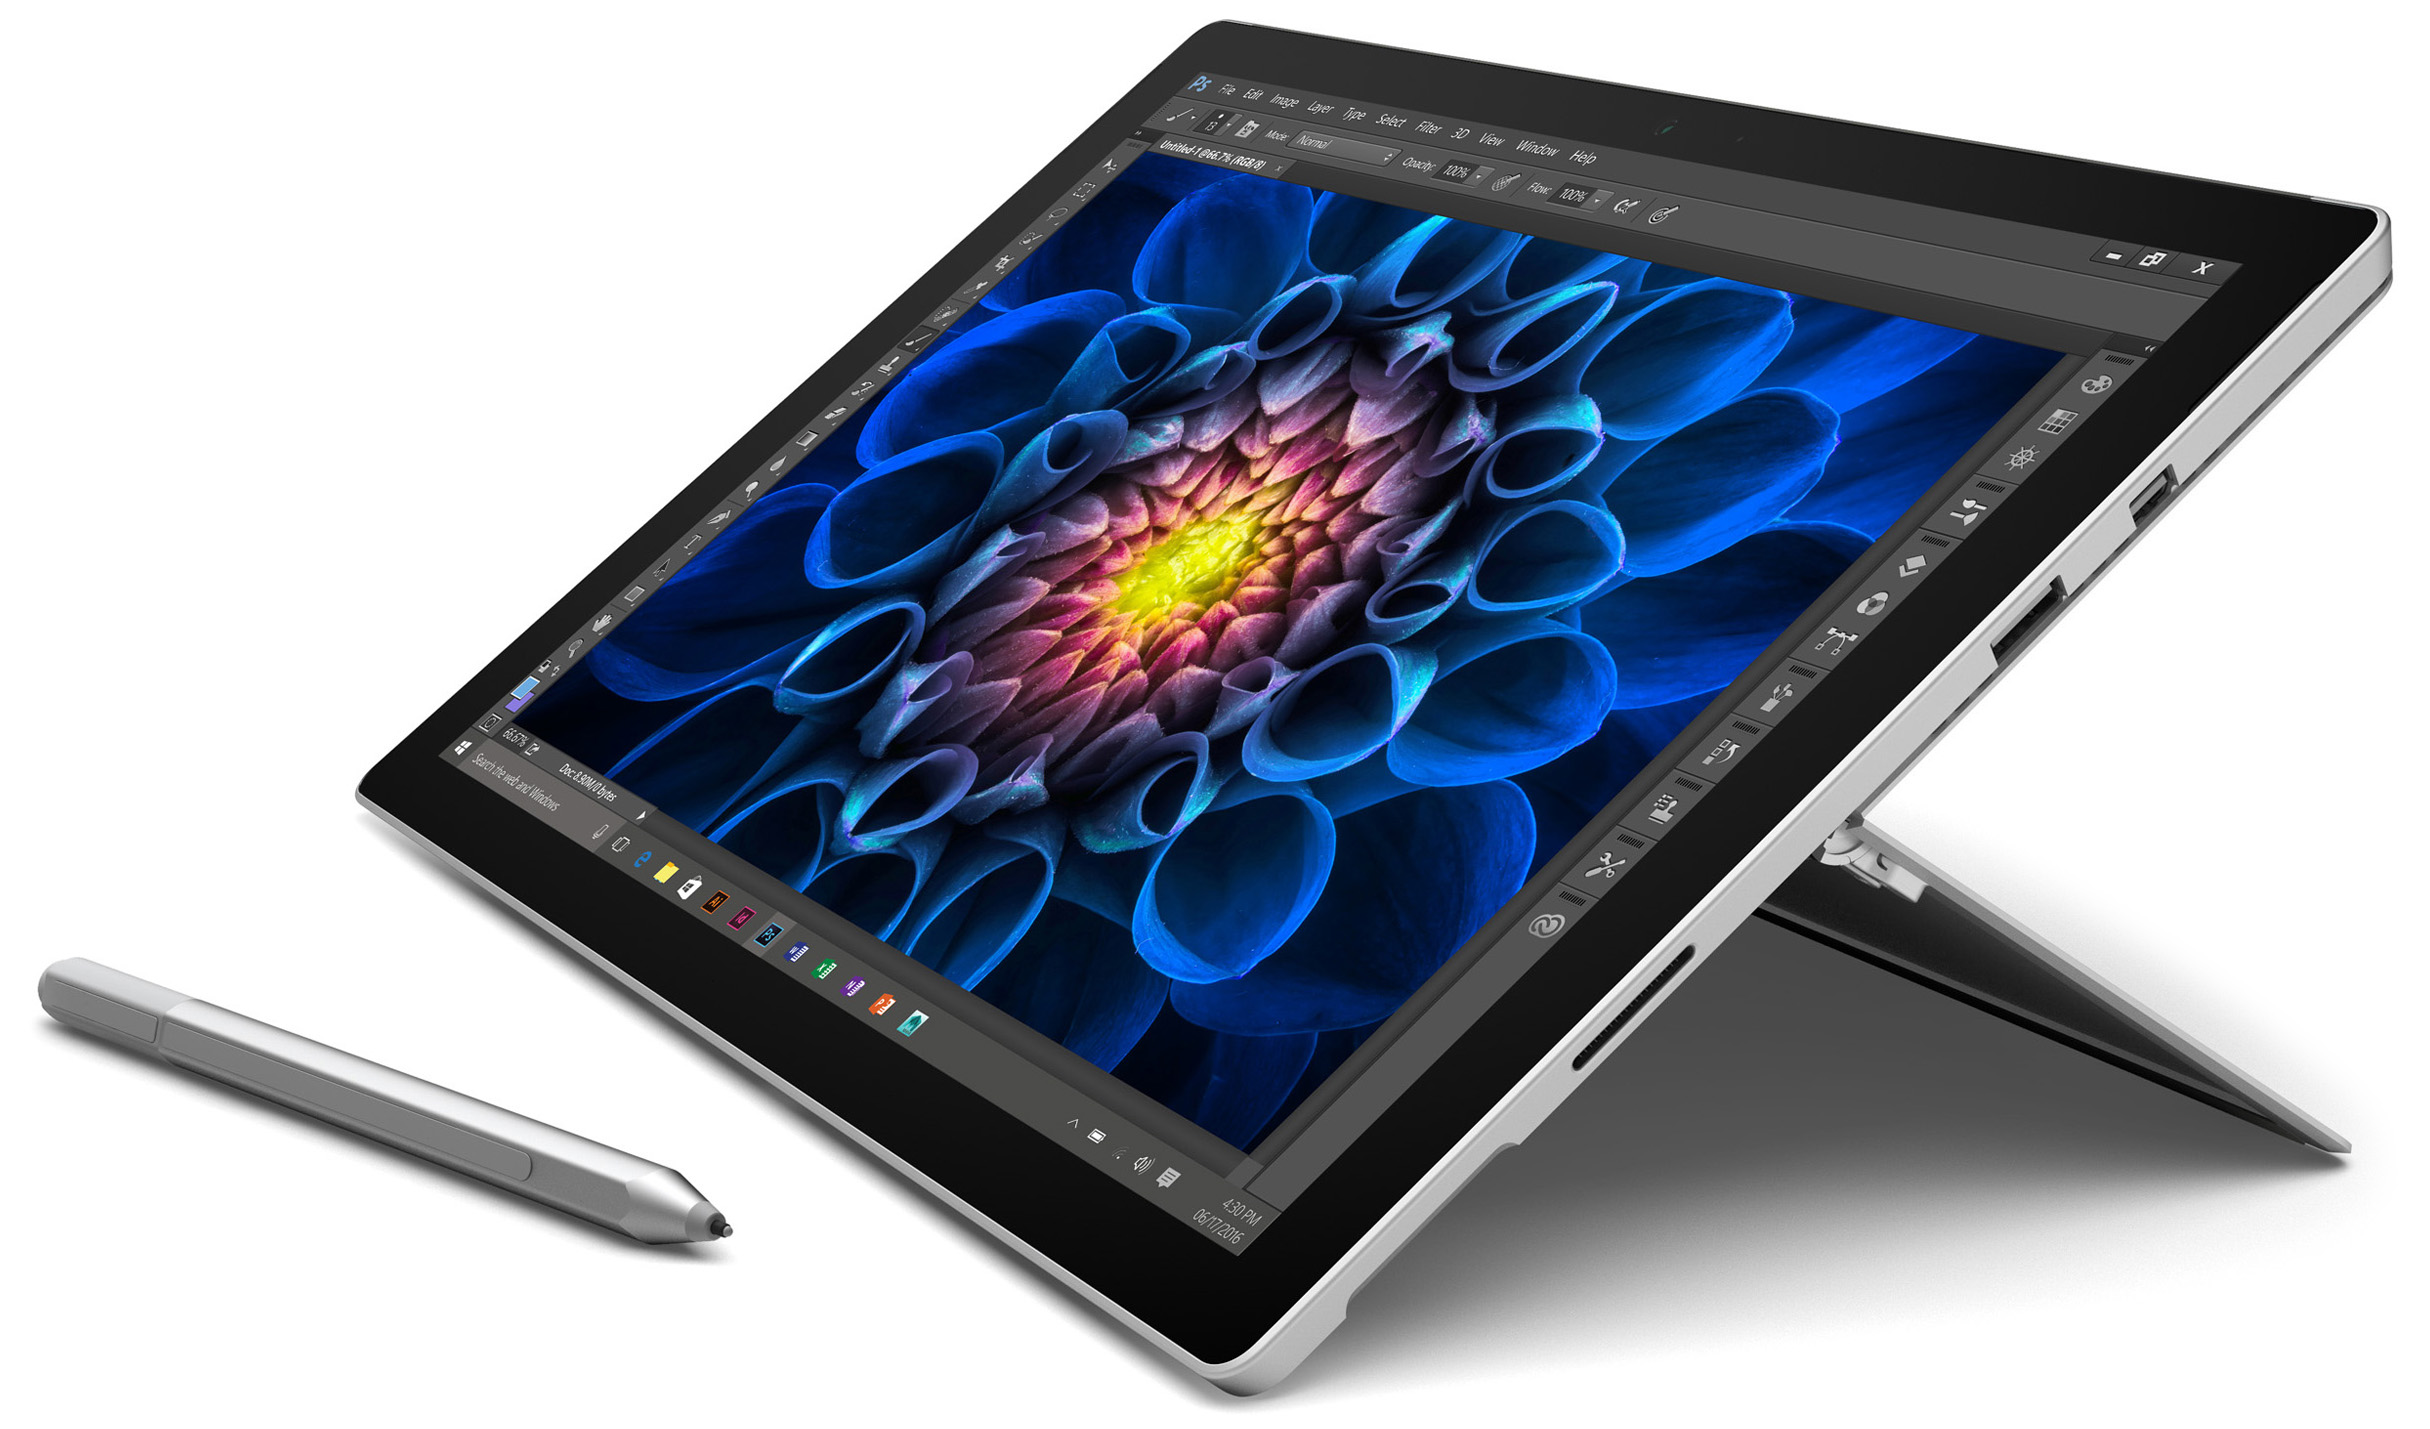 Microsoft Surface Pro 4 - 256GB / Intel Core i5